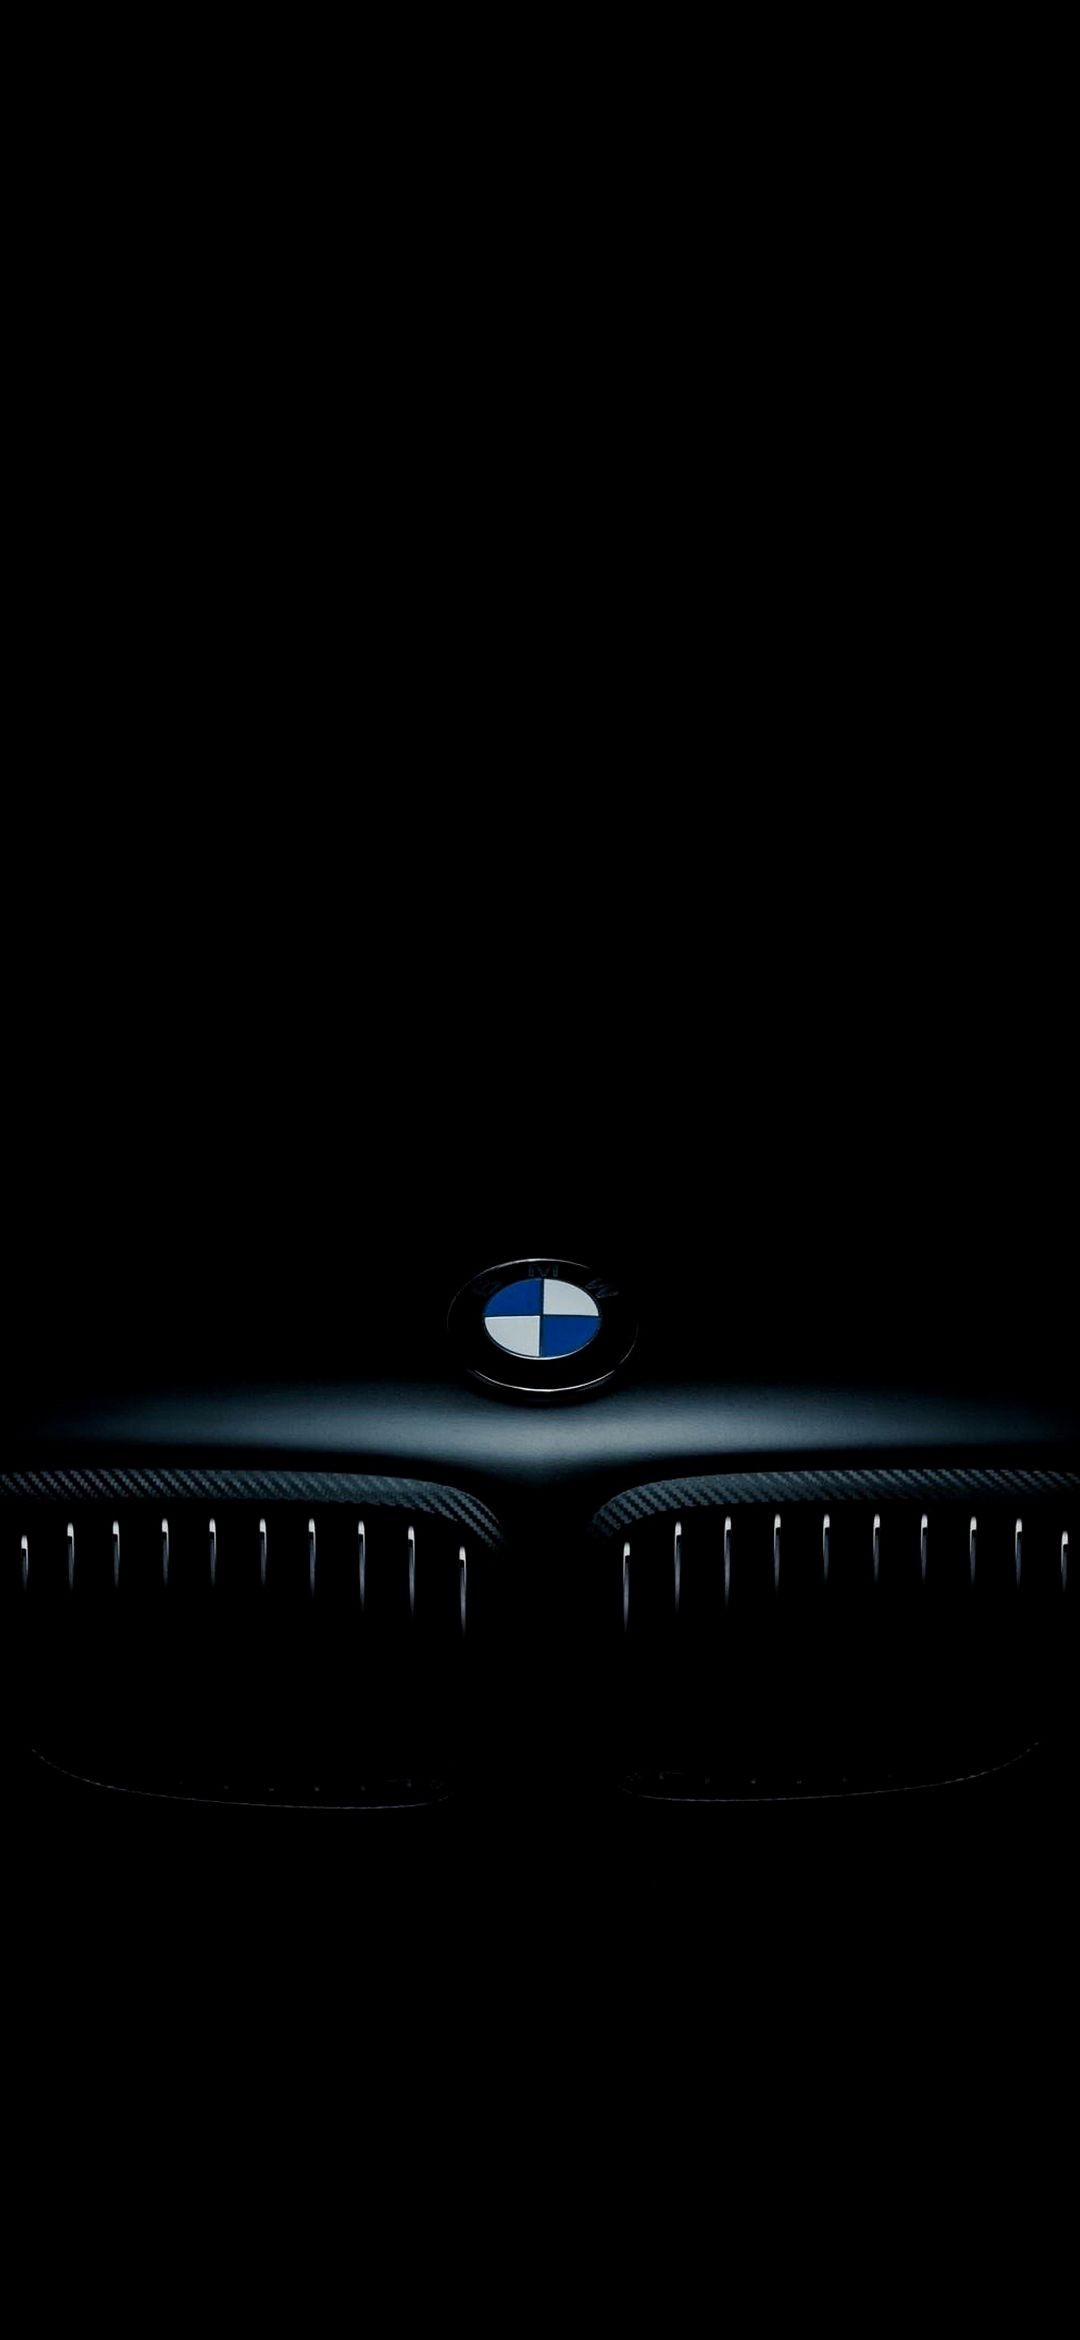 Amoled Archives Page 15 Of 25 Traxzee Bmw Wallpapers Amoled Wallpaper Car Iphone Wallpaper